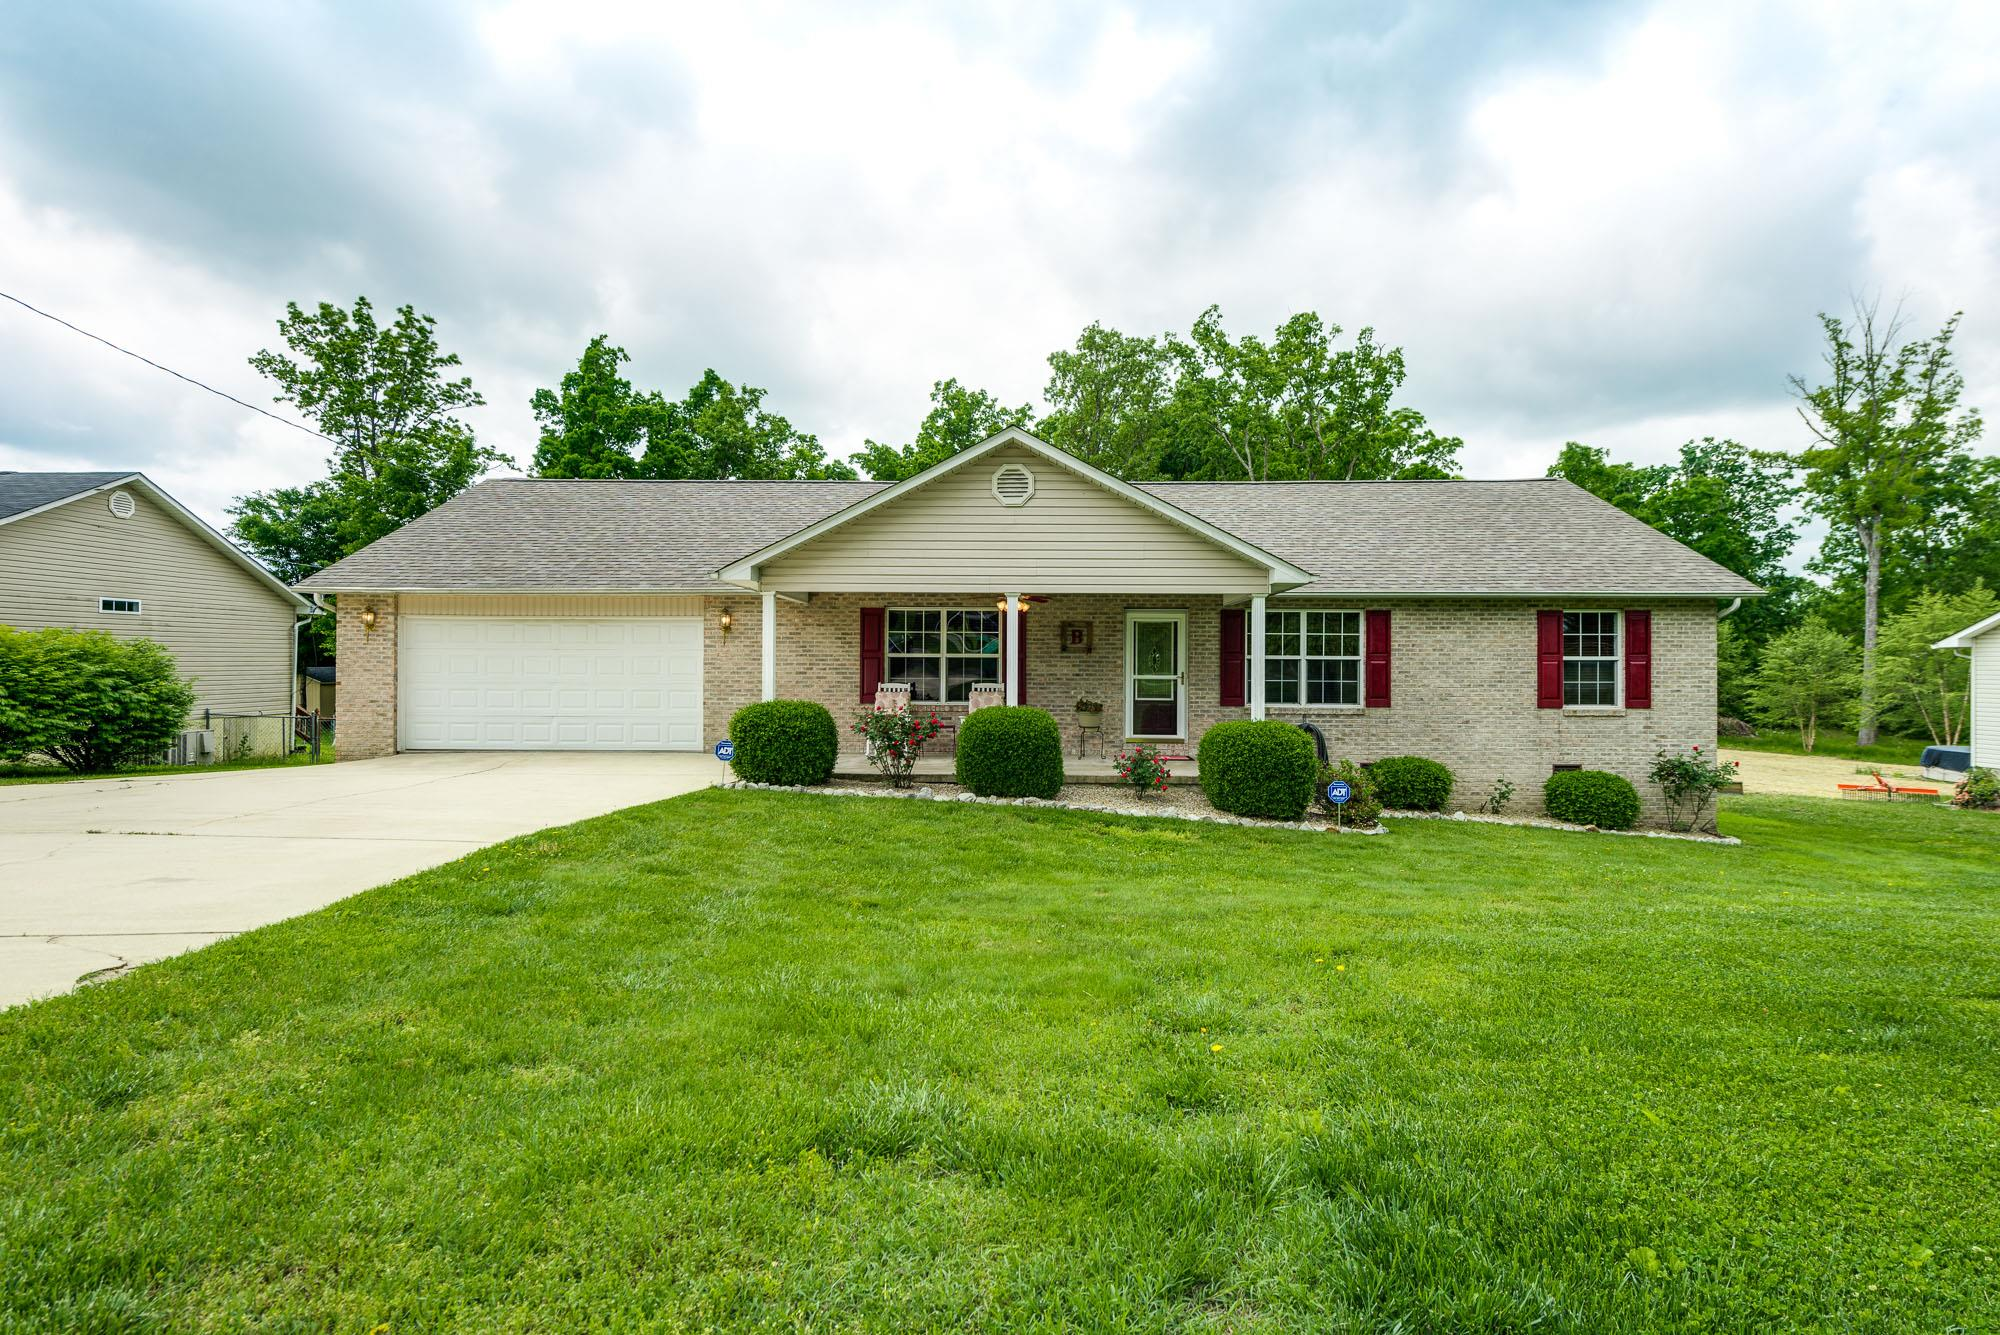 977 Taylors Chapel Rd, Crossville, TN 38572 - Crossville, TN real estate listing